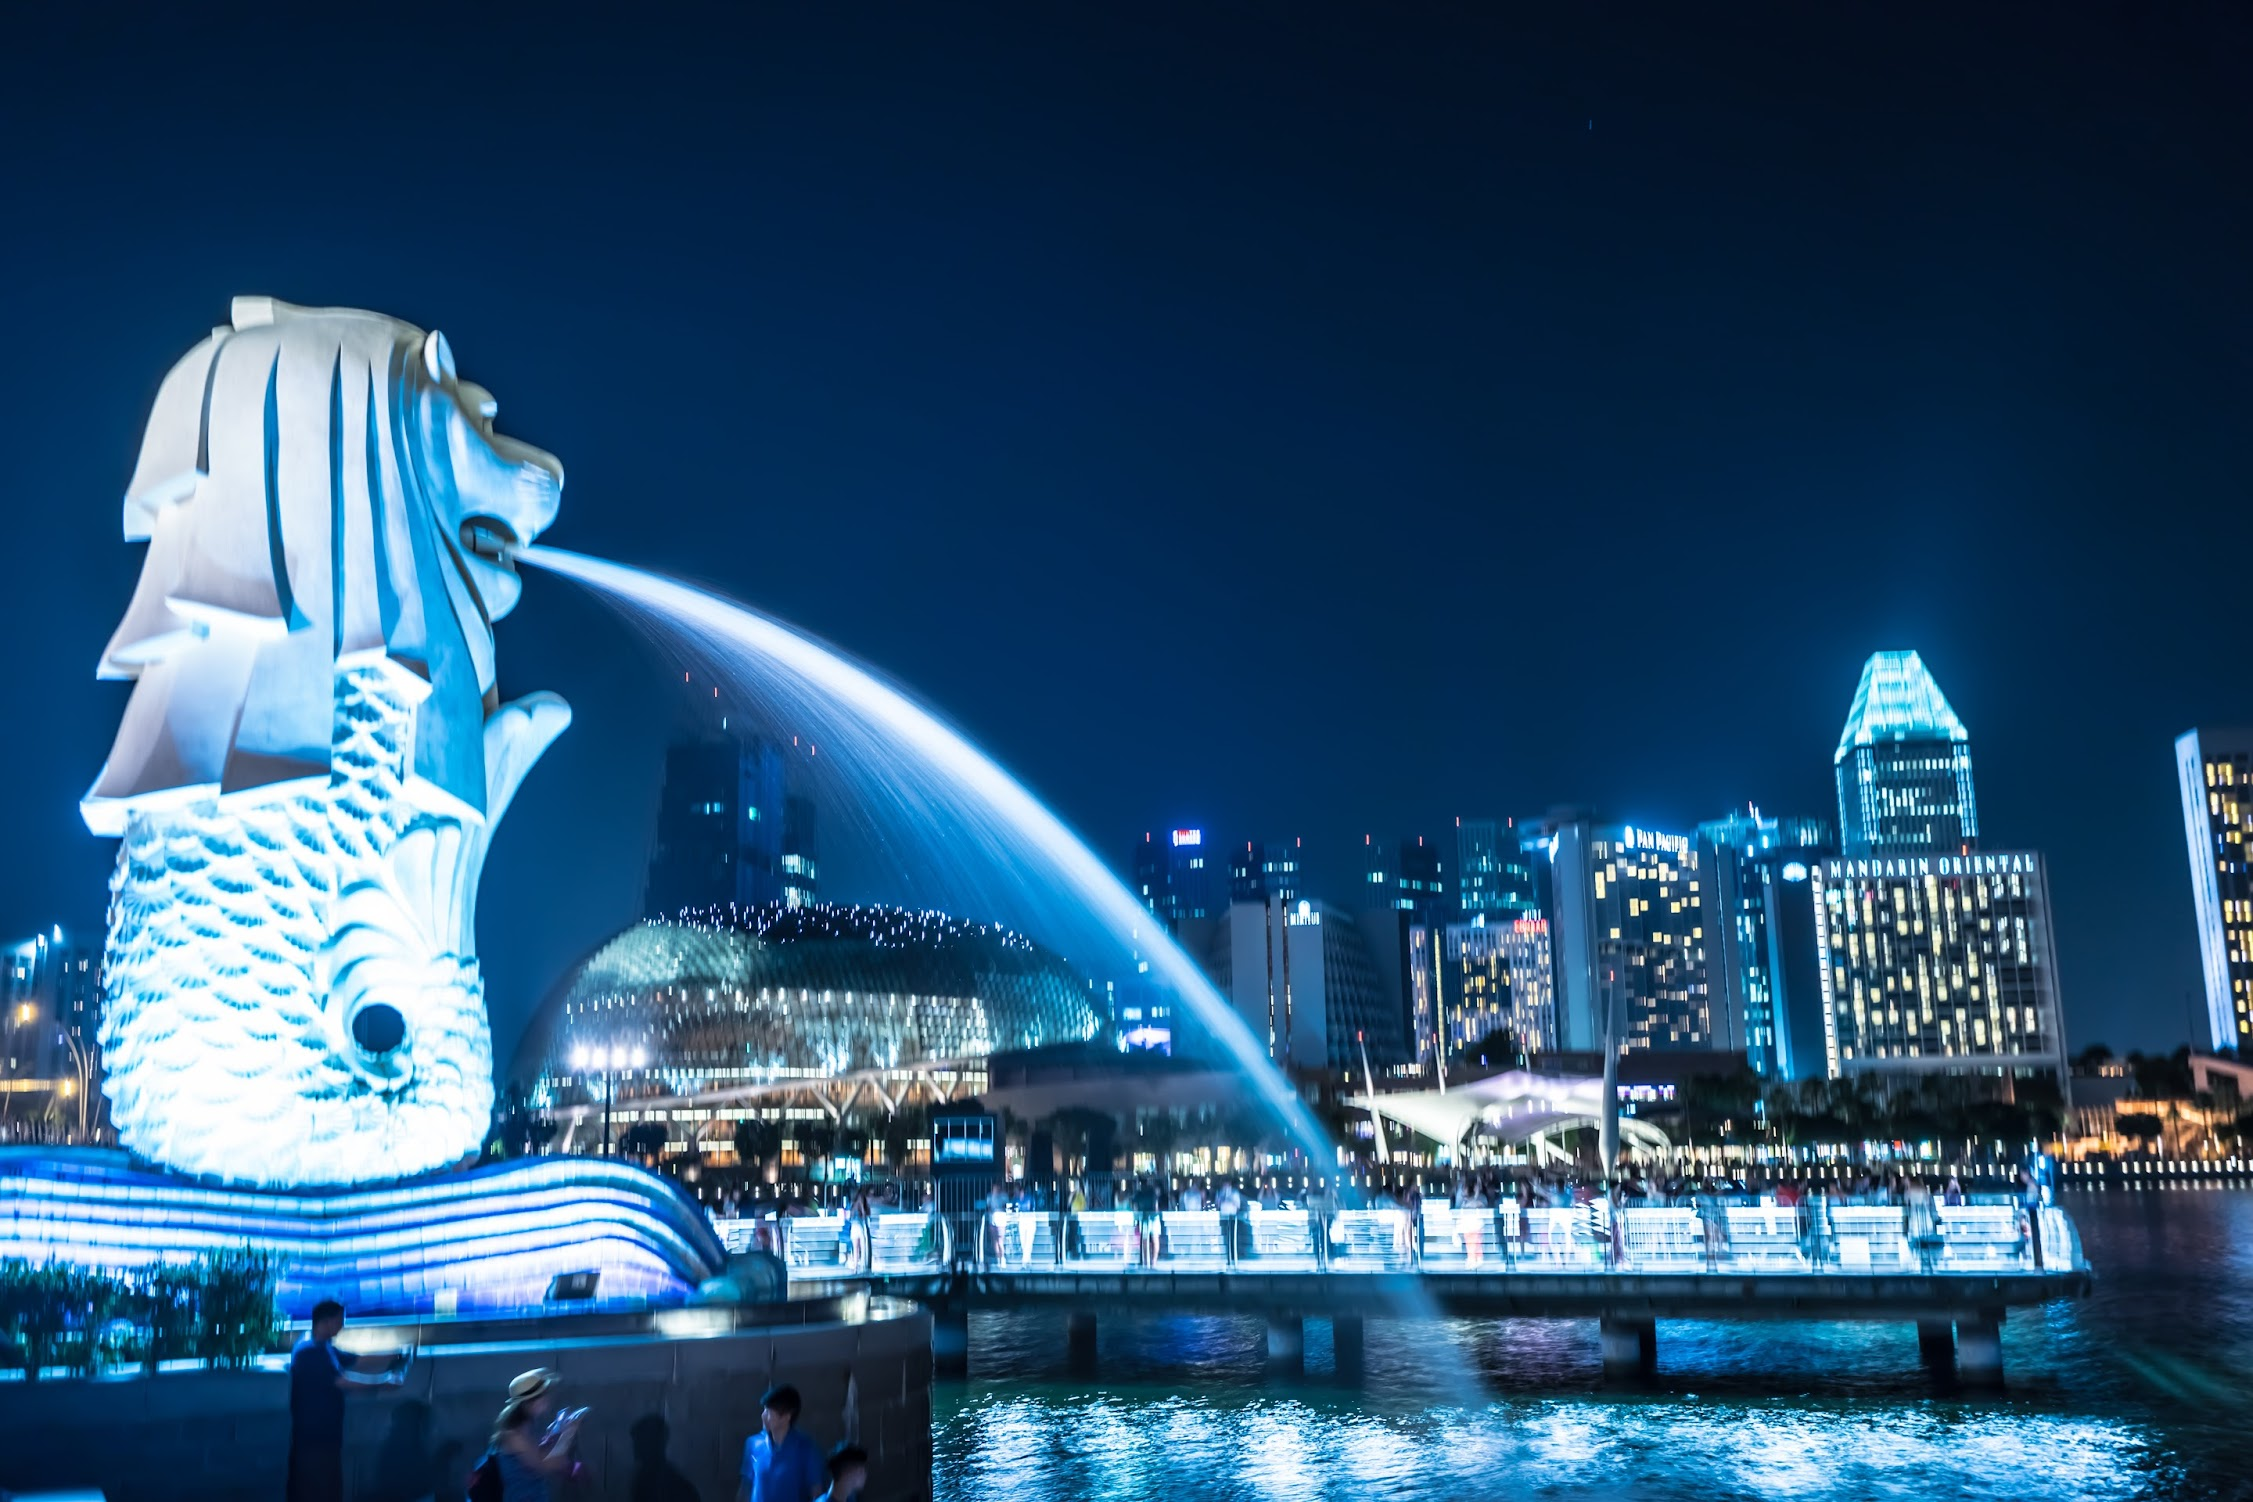 Singapore Merlion night view1